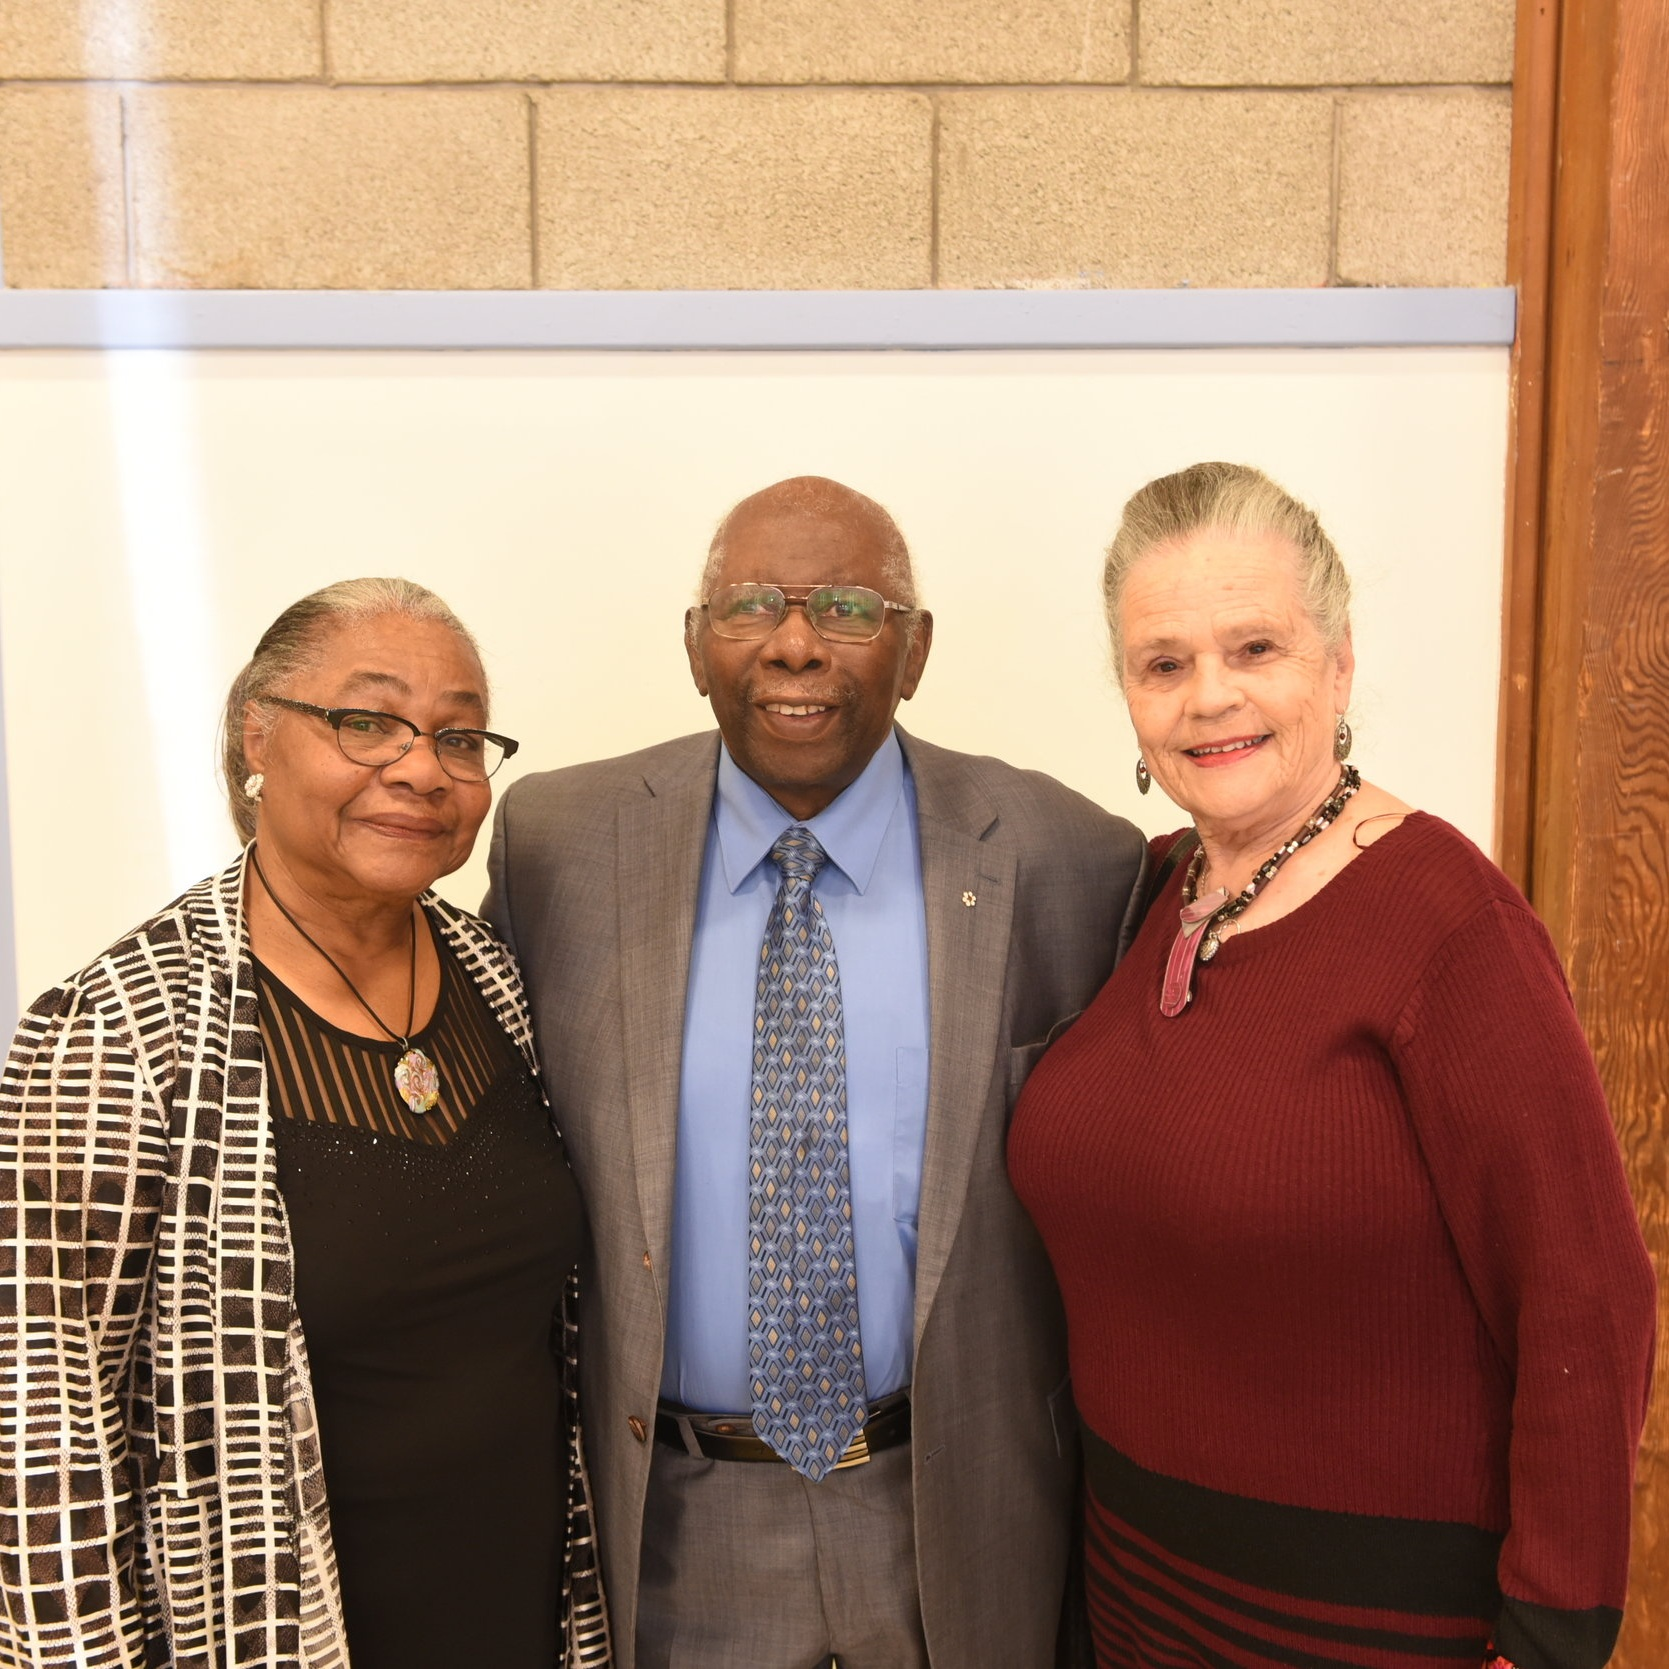 Lauris DaCosta (l) with Oliver Jones and his wife Monique Leclerc